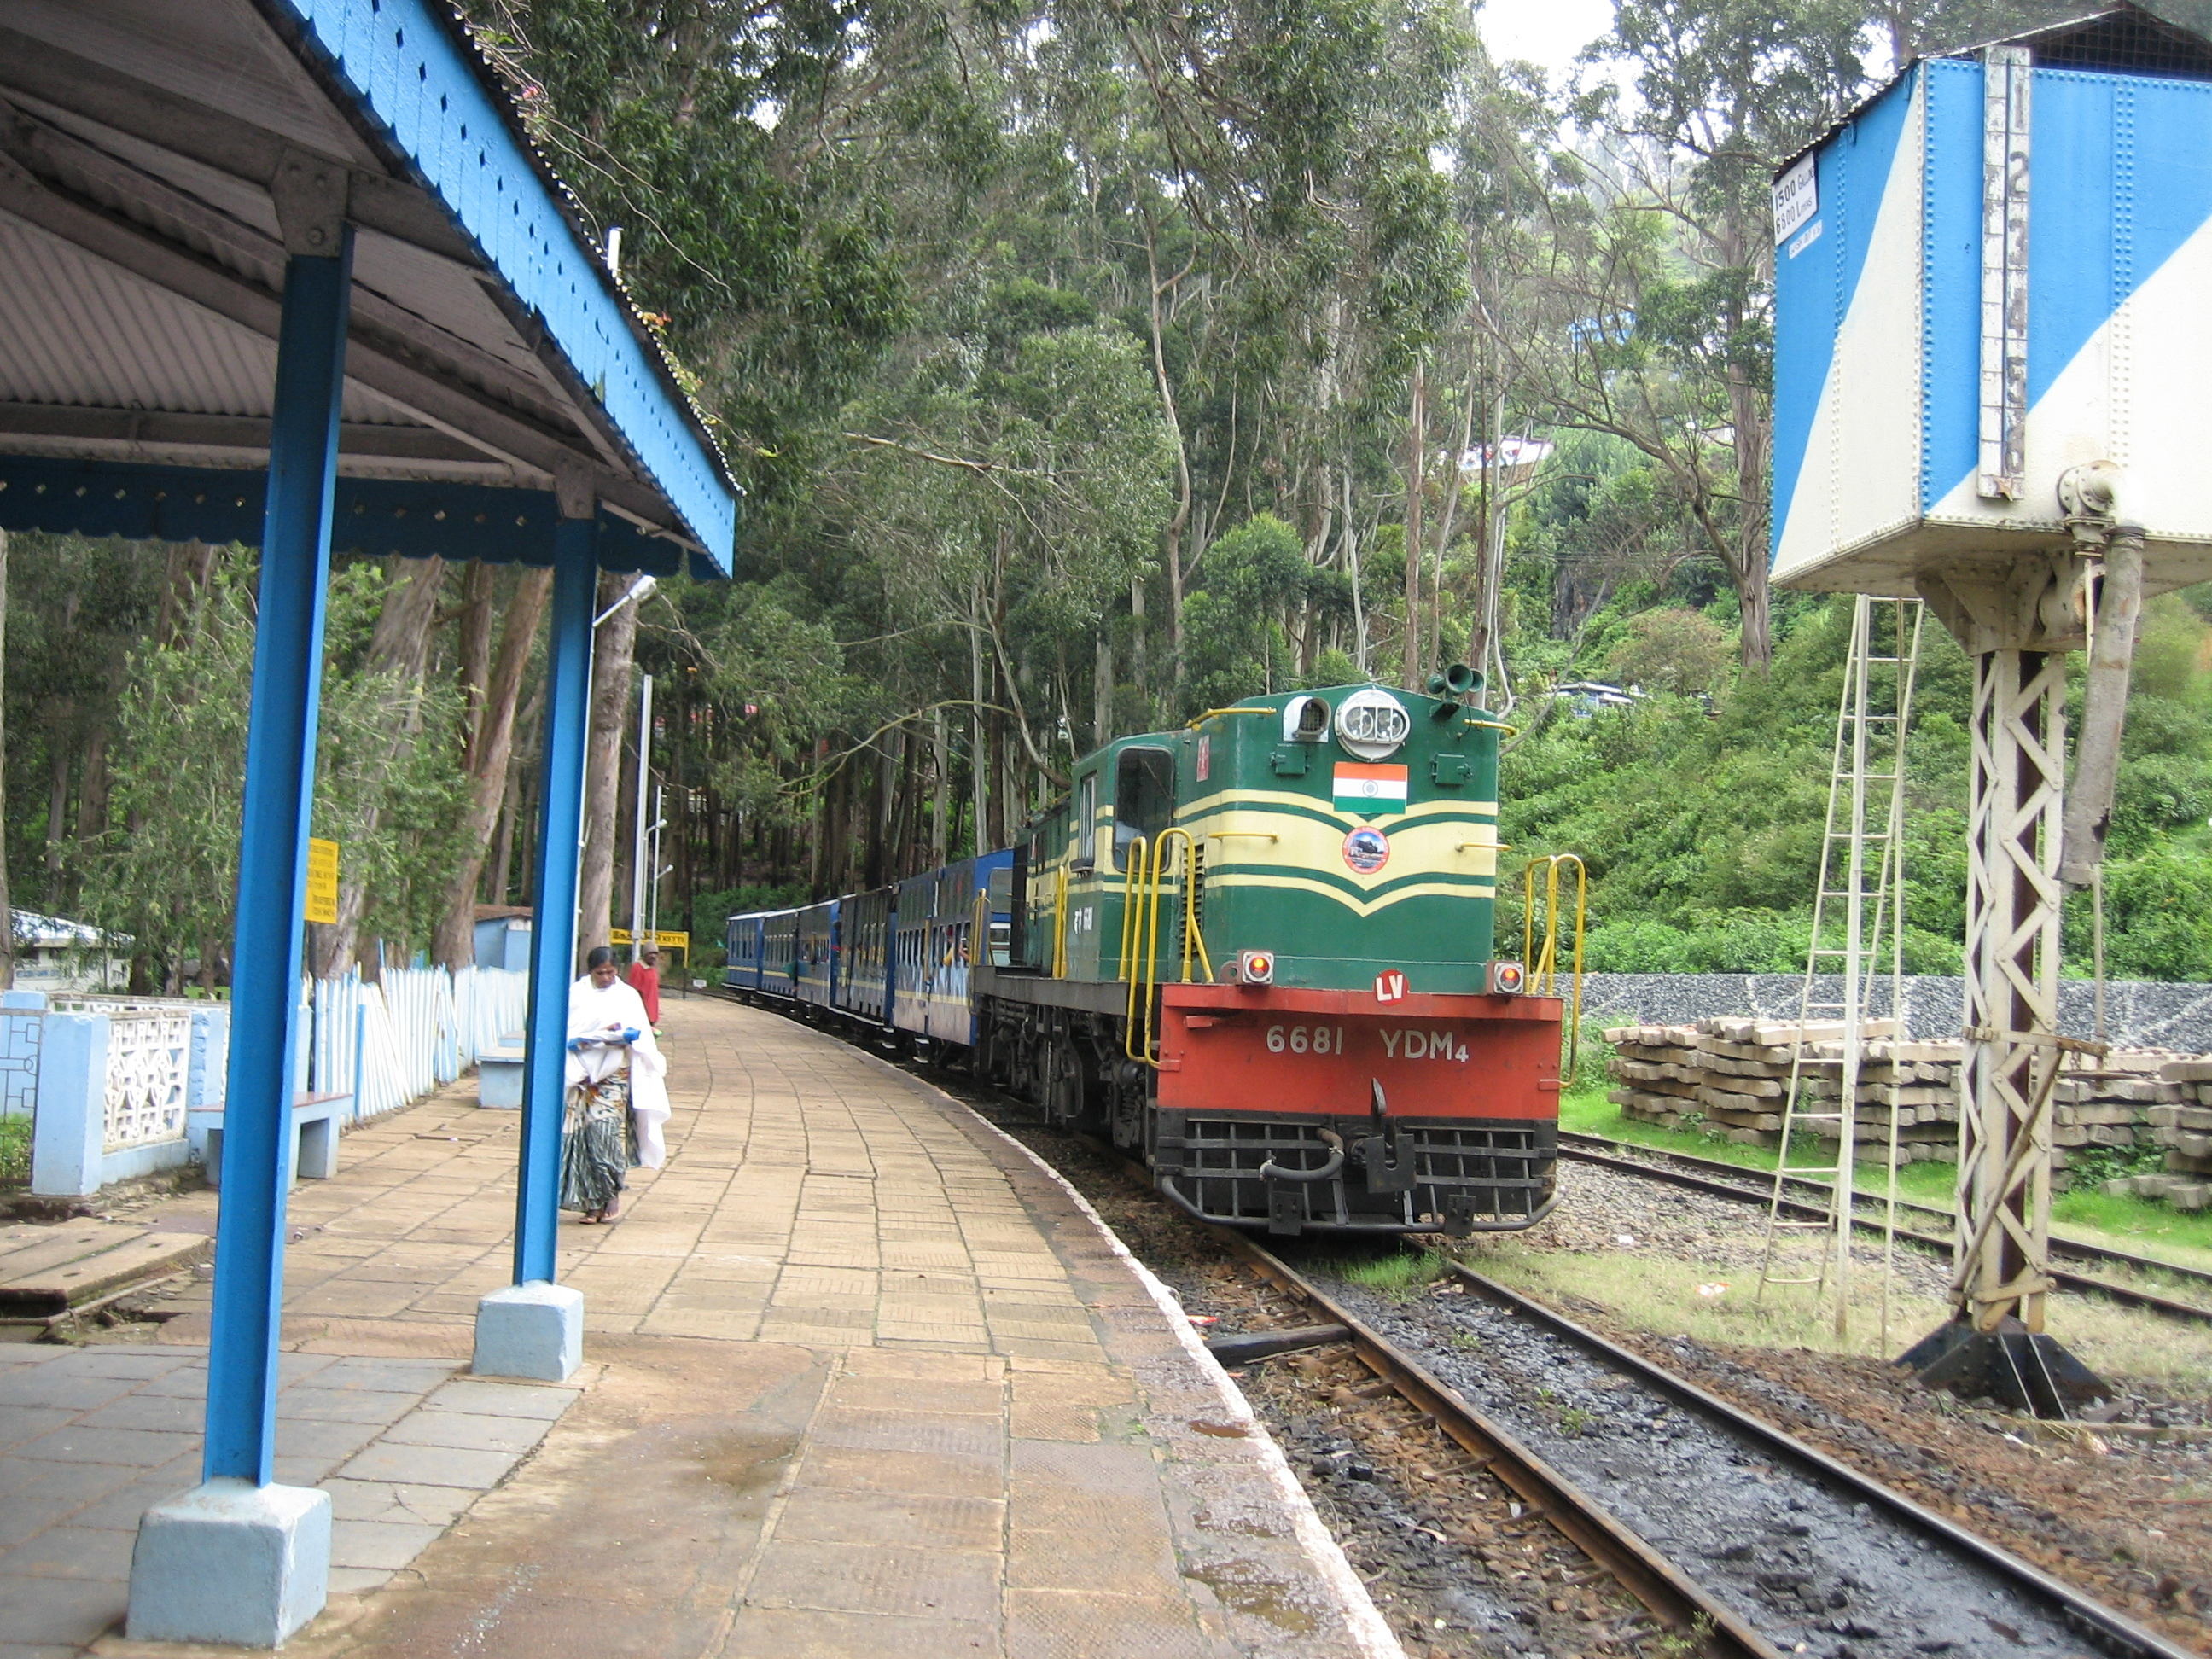 The Nigiris Mountain Railway, also known as the toy train, built in 1908 is a 46 kilometer trip through the Nilgiris hills